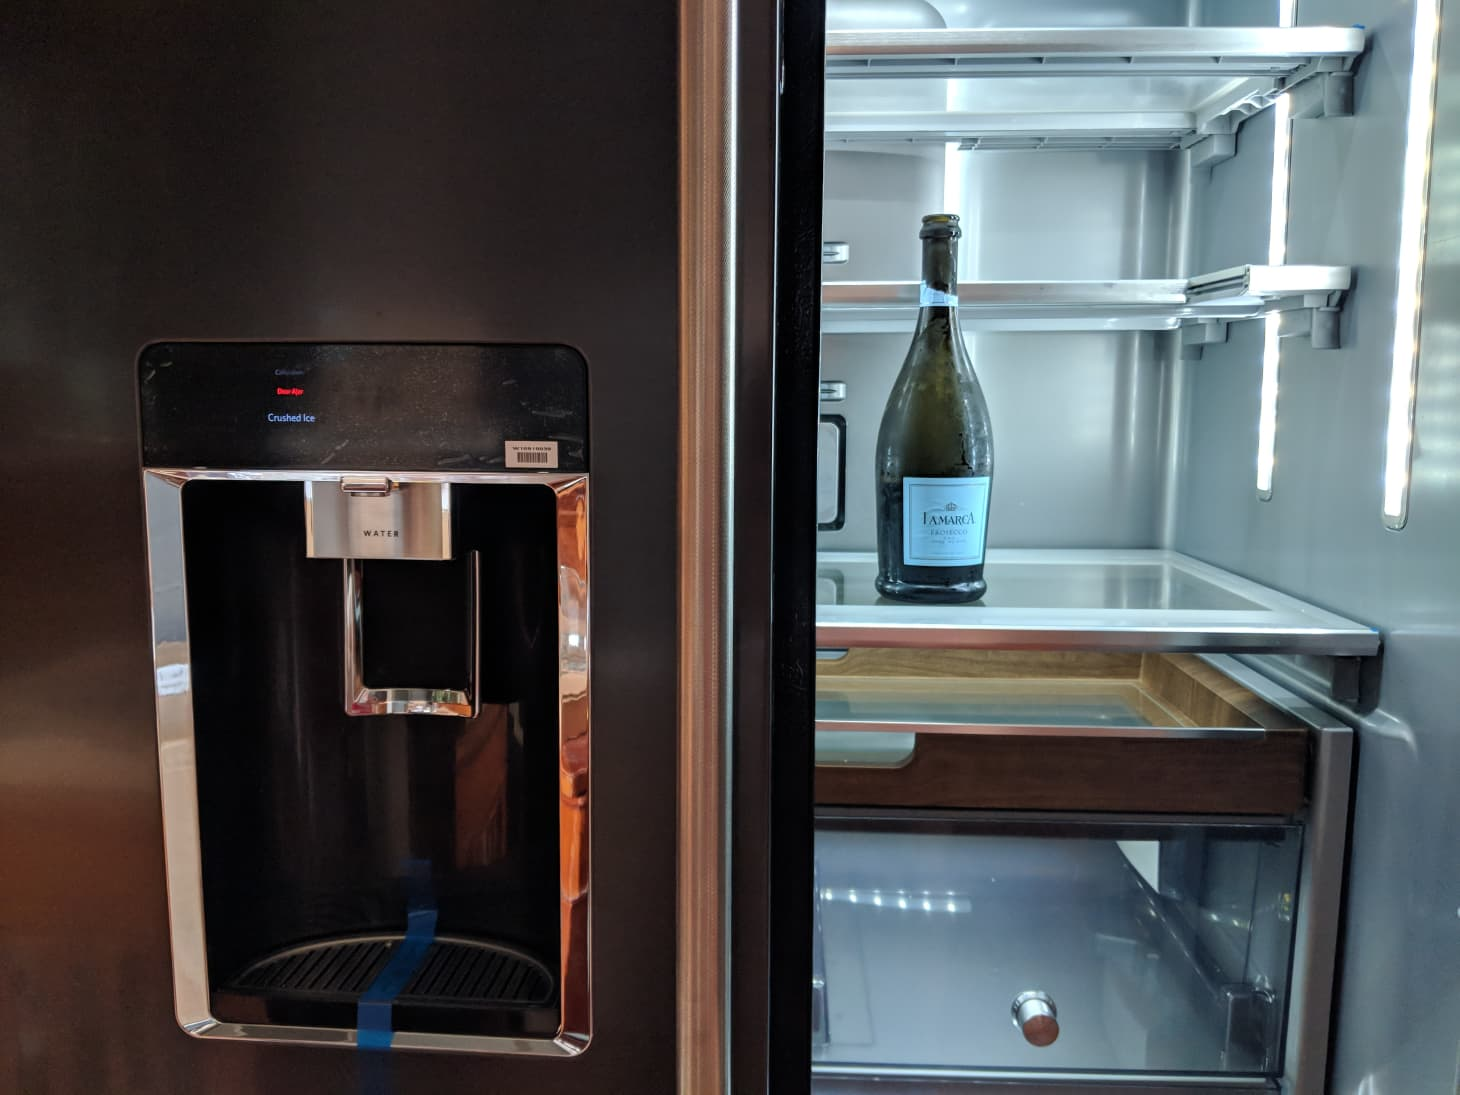 Why I Regret Buying a Black Stainless Steel Appliance